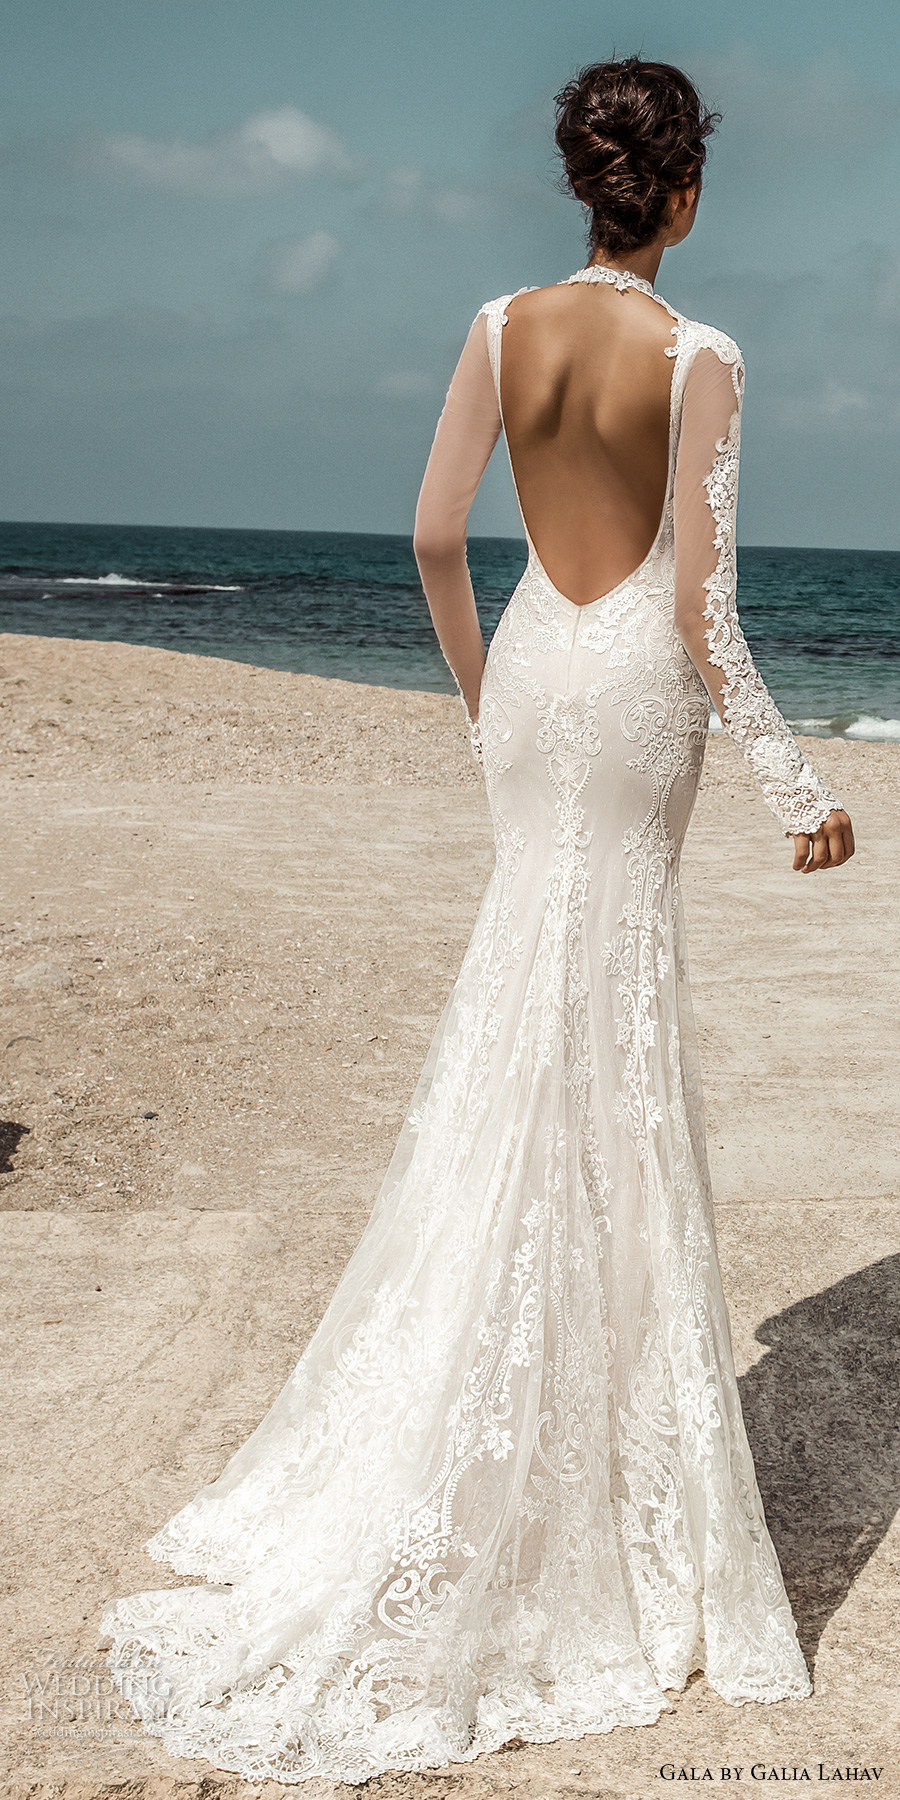 galia lahav gala 2017 bridal long sleeves illusion high jewel sweetheart neckline heavily embellished bodic elegant lace fit and flare wedding dress open low back sweep train (801) bv